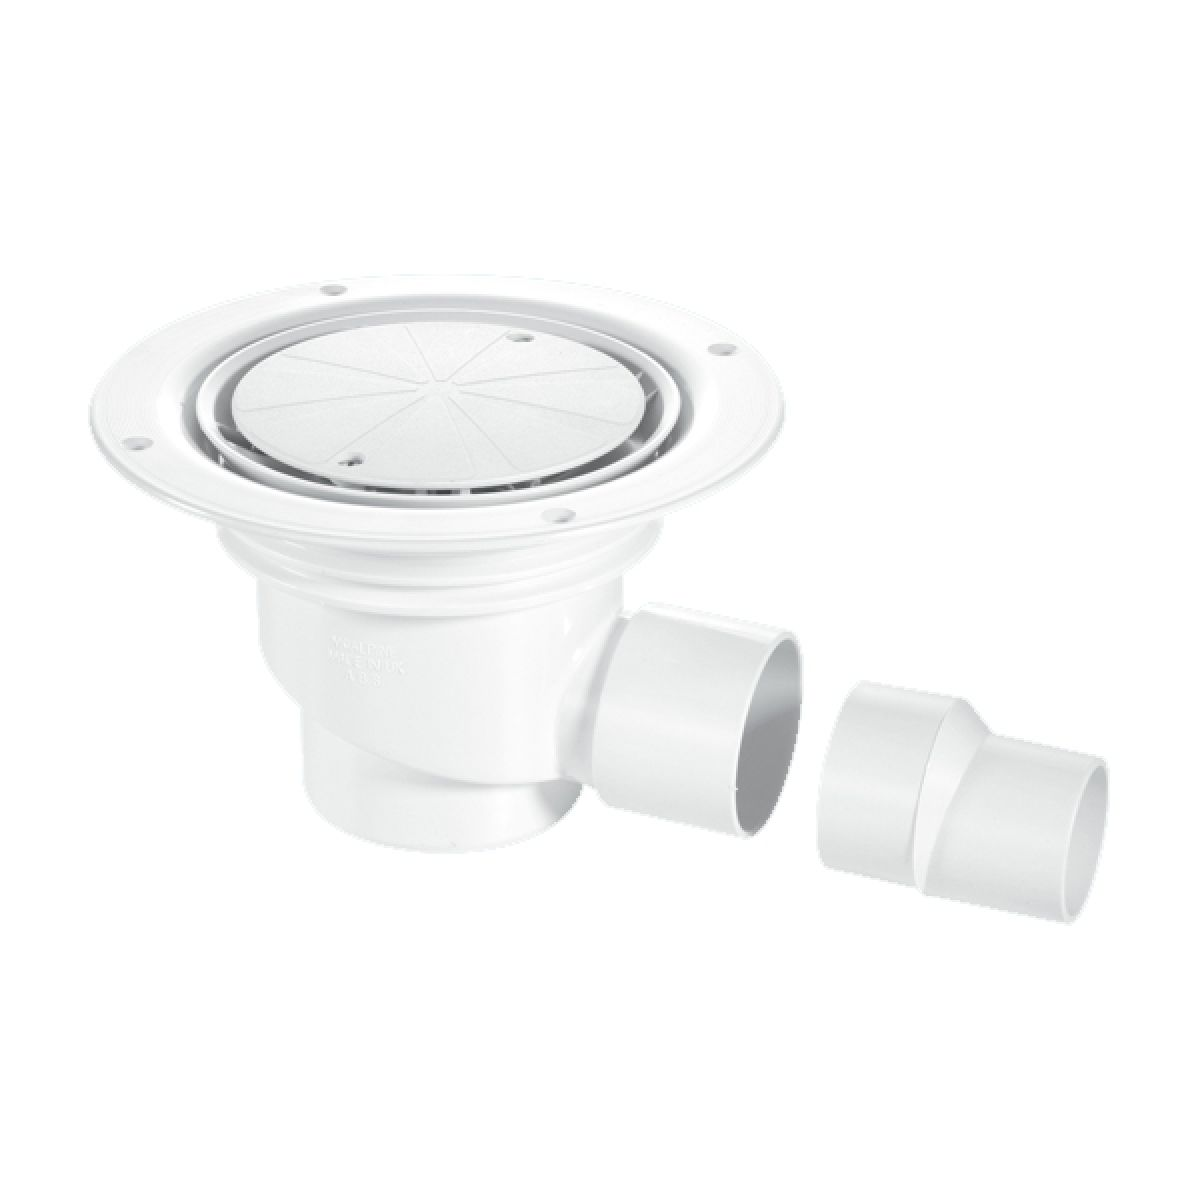 McAlpine TSG1-WH 75mm Water Seal Trapped Gully White Plastic Clamp Ring and Cover Plate